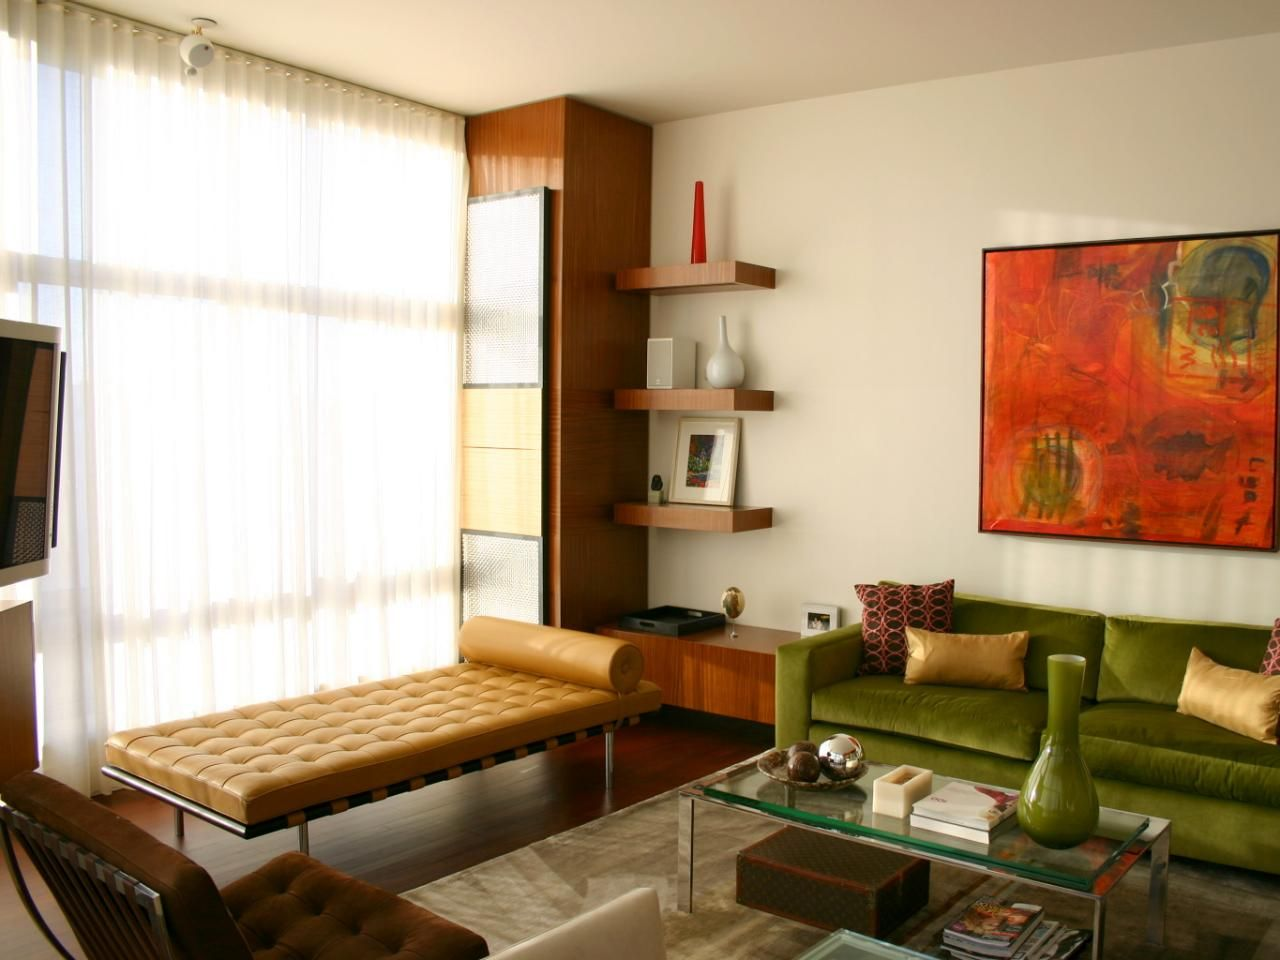 Add midcentury modern style to your home